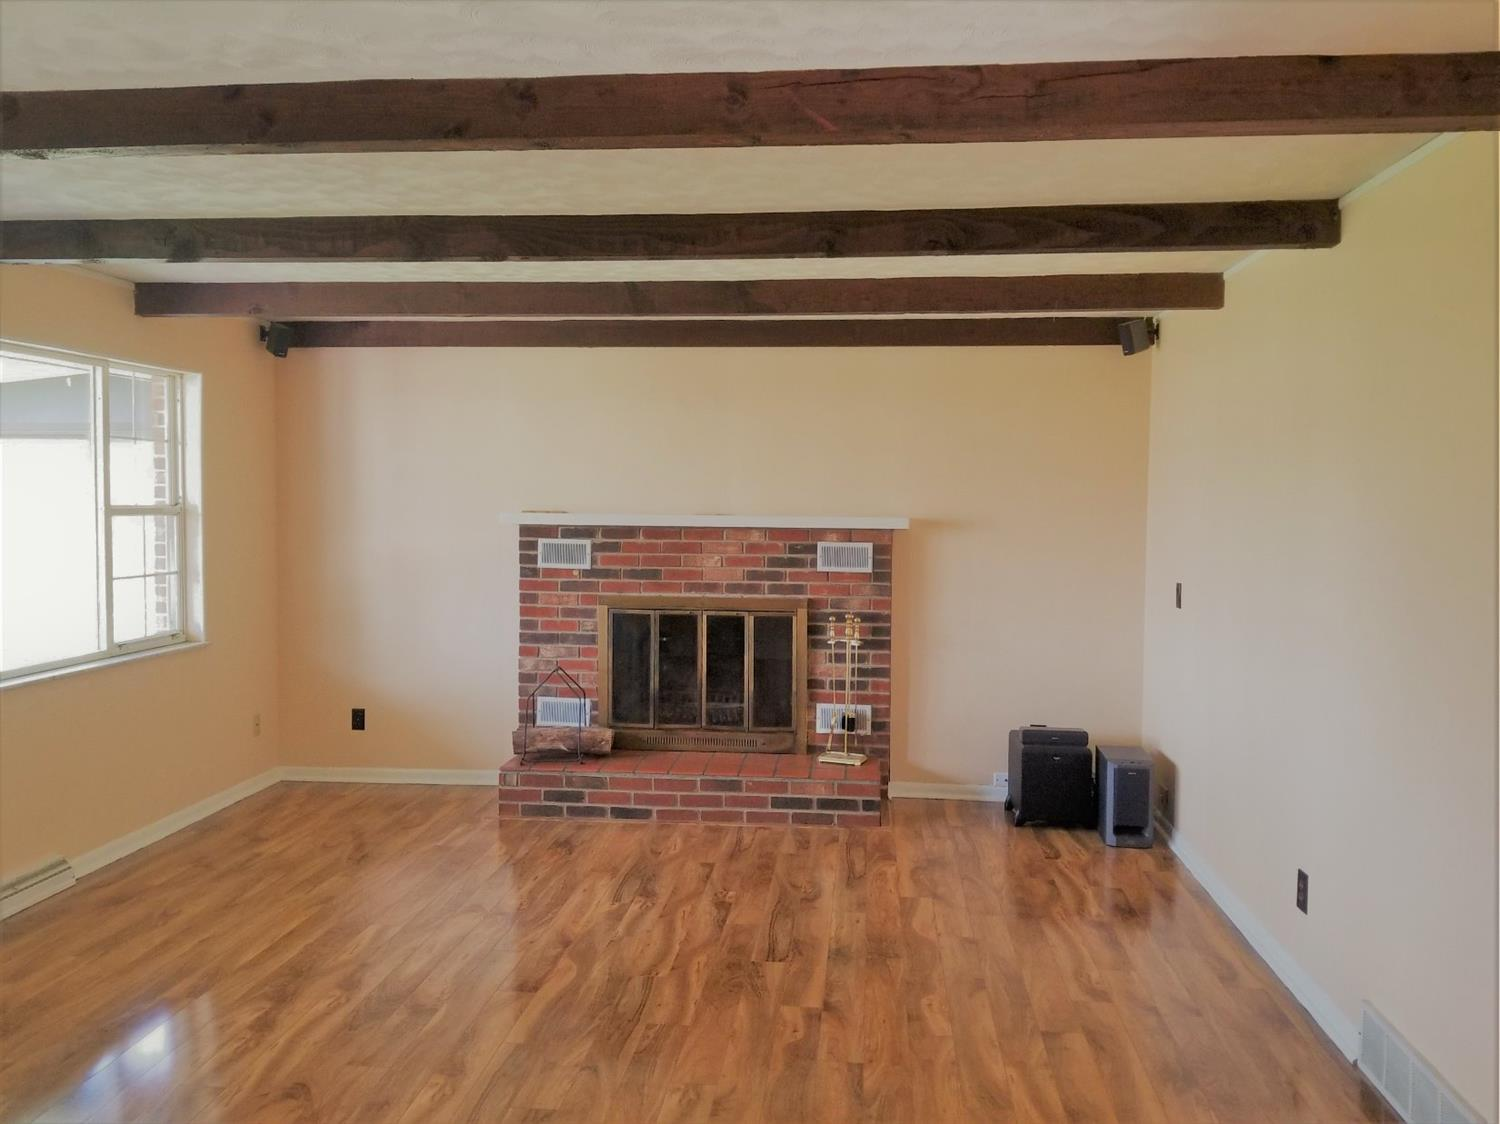 Photo 3 for 10568 Marvin Rd Harrison Twp, OH 45030